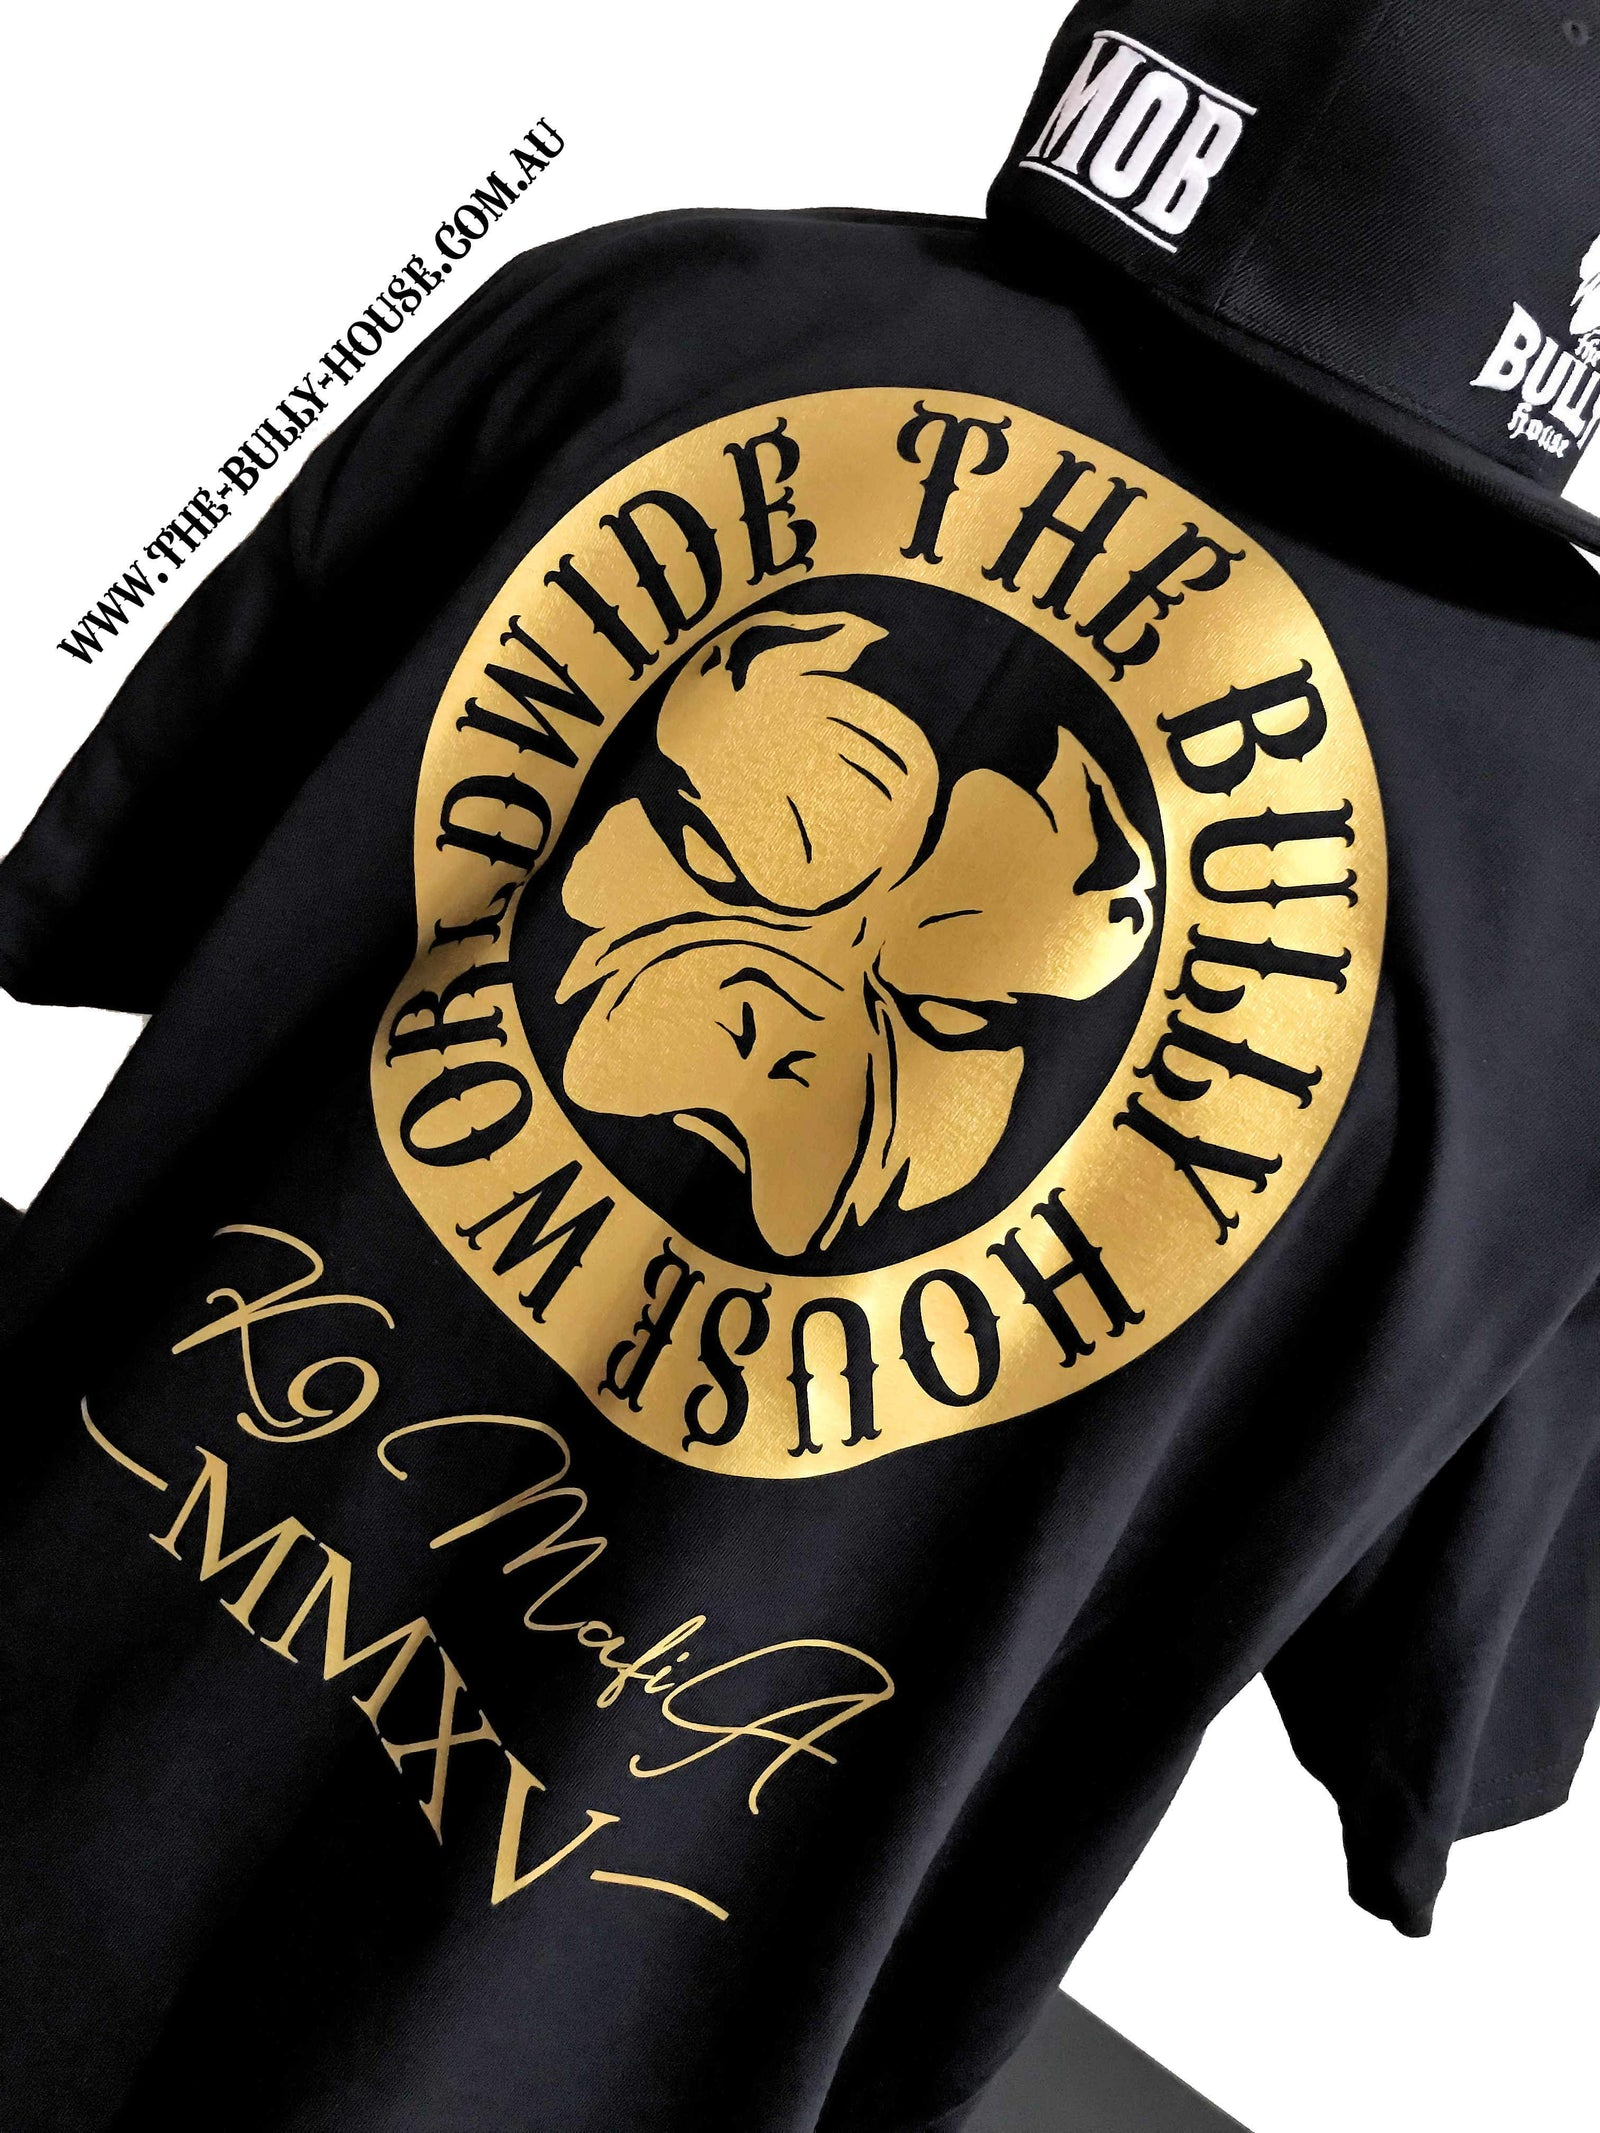 The Bully House -- MEDALLION -- T-Shirt - MENS  CUT // Gold Print